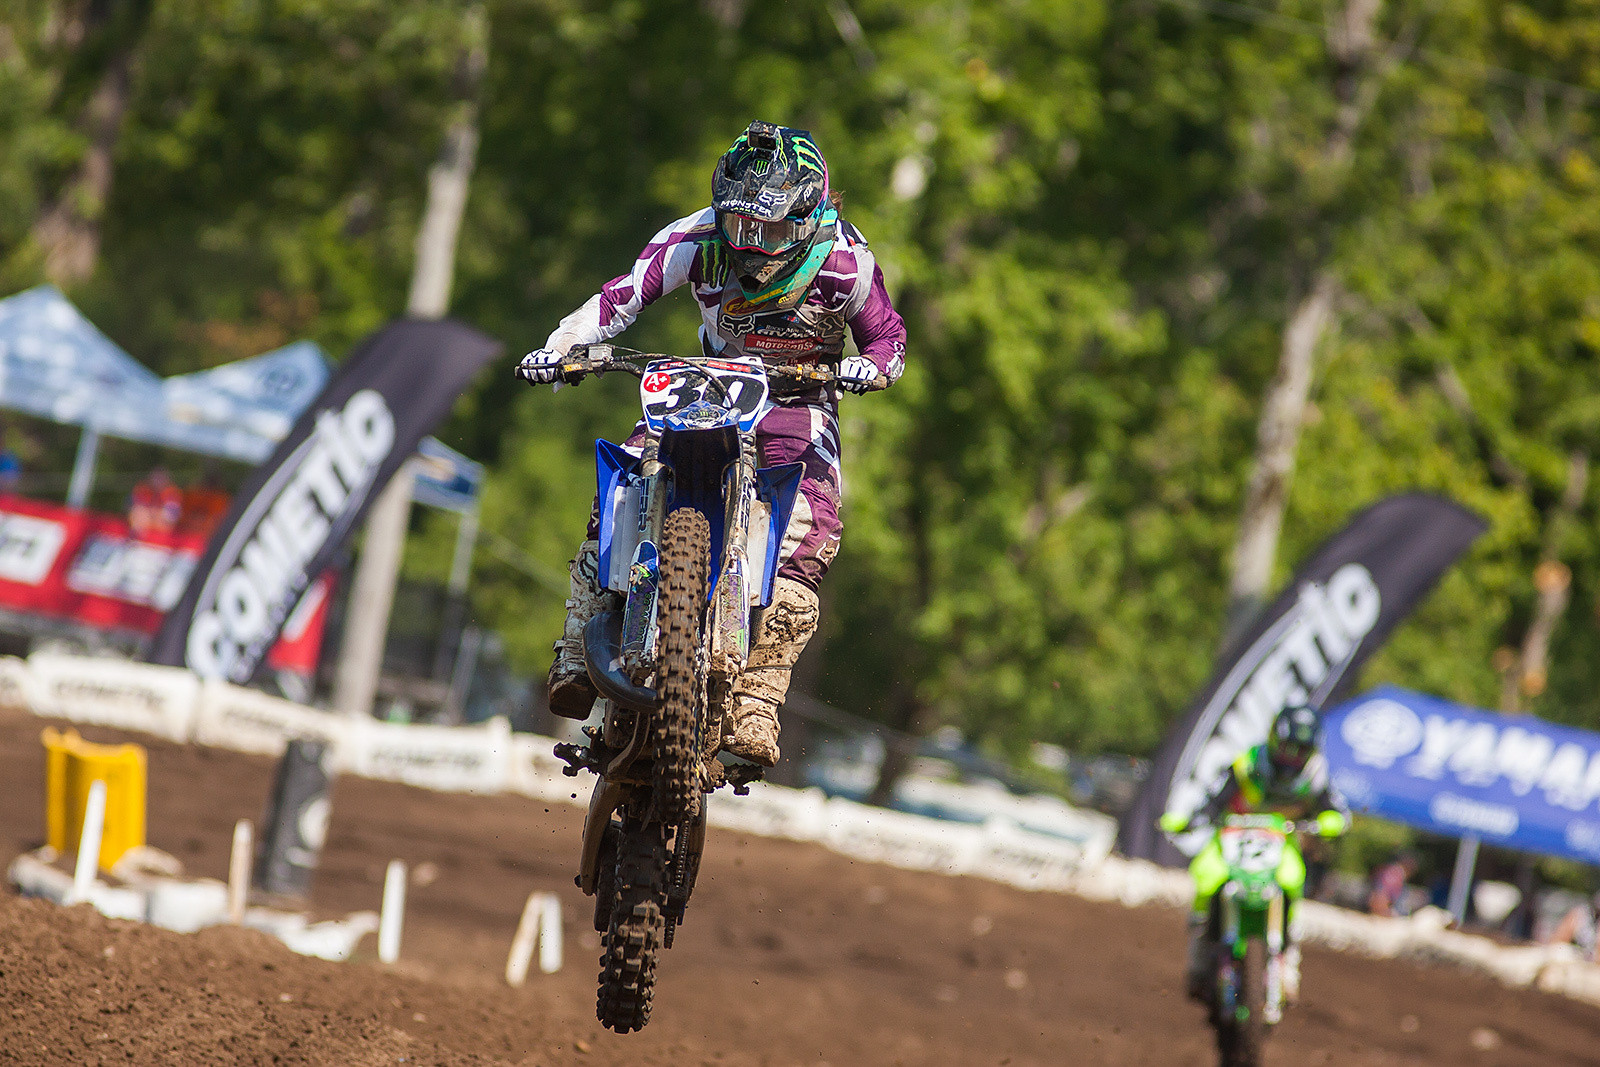 Jordan Jarvis rebounded from a first moto DNF to beat Hannah Hodges in the second Women's moto, but a title is out of the question.